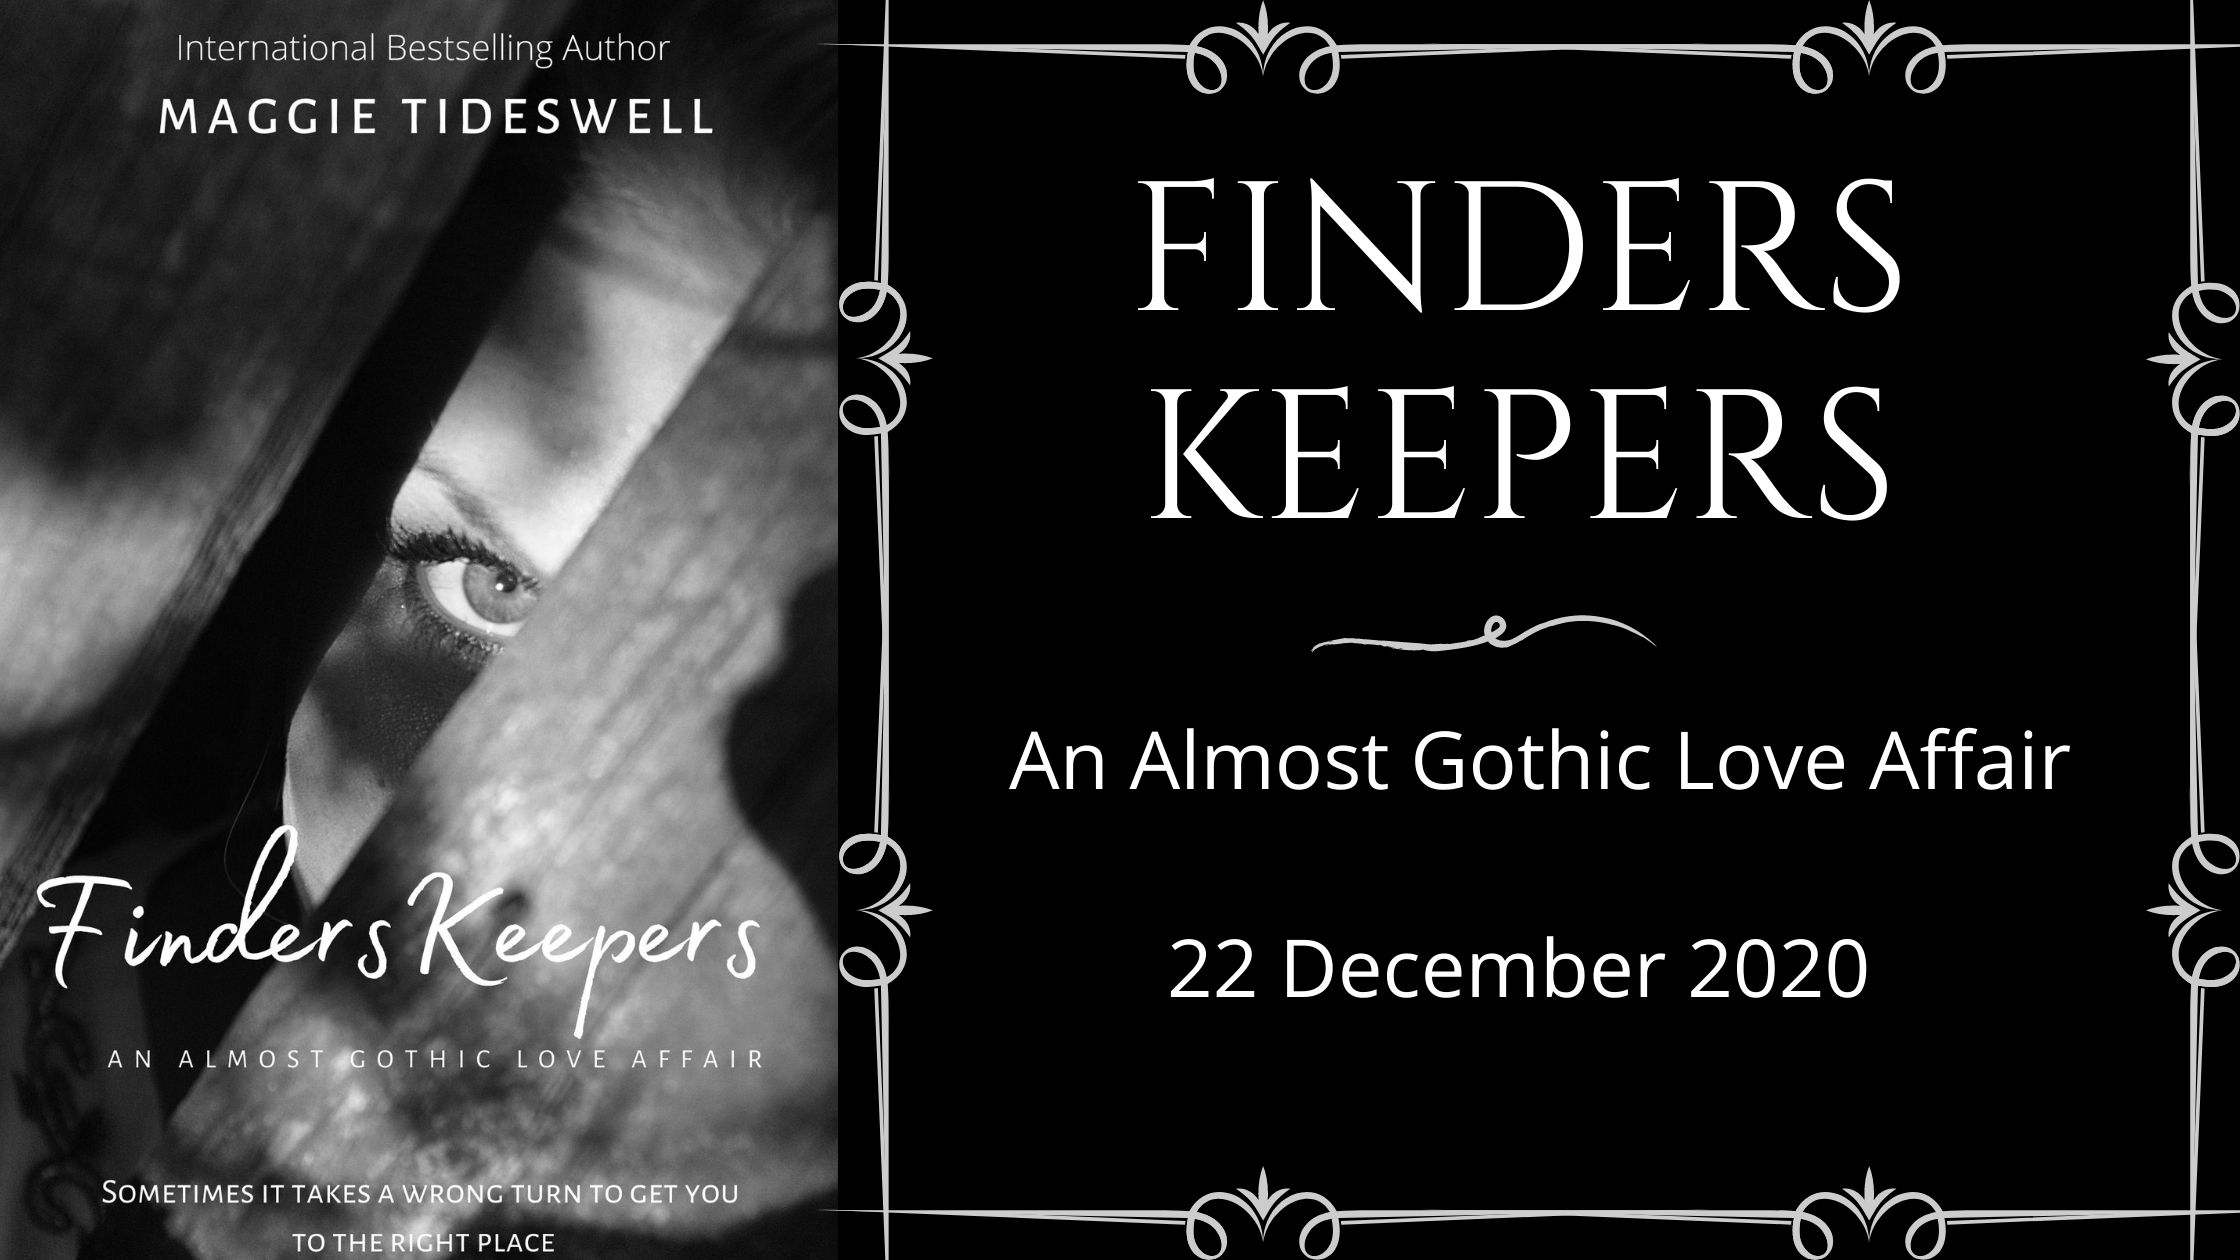 International Best-selling Maggie Tideswell, author of Finders Keepers: An Almost Gothic Love Affair, is my last Guest Author of 2020